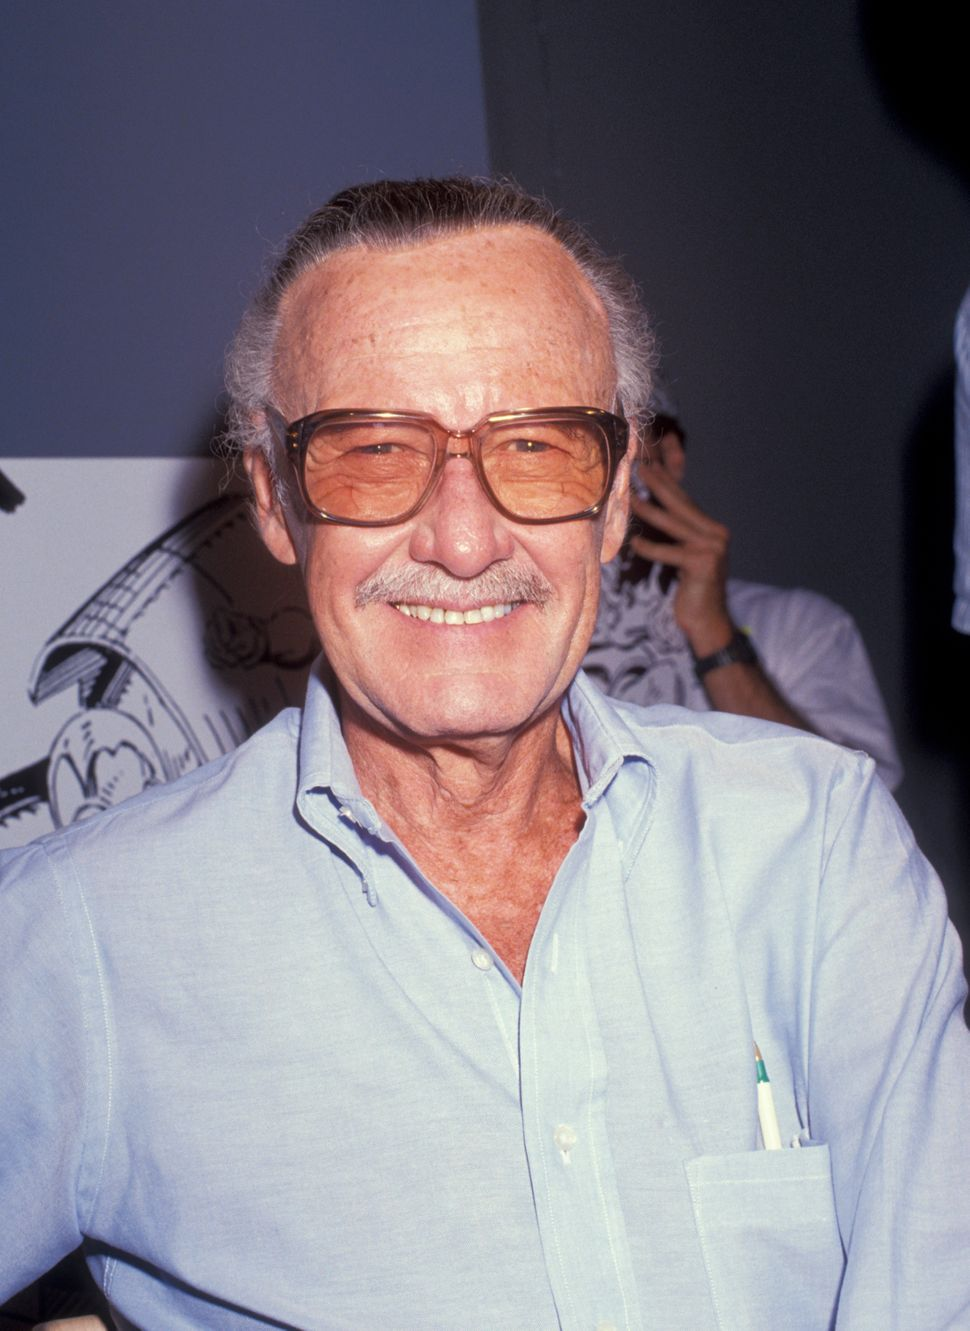 Comic book mogul Stan Lee attending 'Comic Book Greats' on Sept. 20, 1991, at Excelsior Productions in Los Angeles.